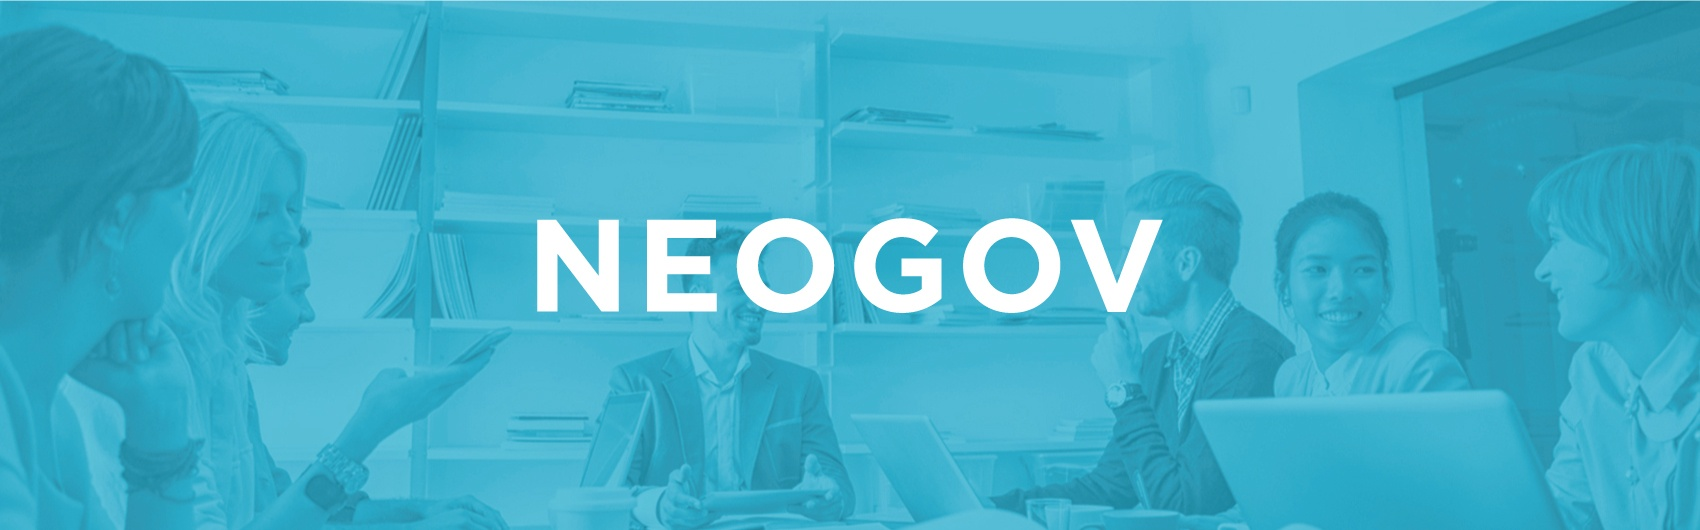 NEOGOV Honored with Multiple Awards